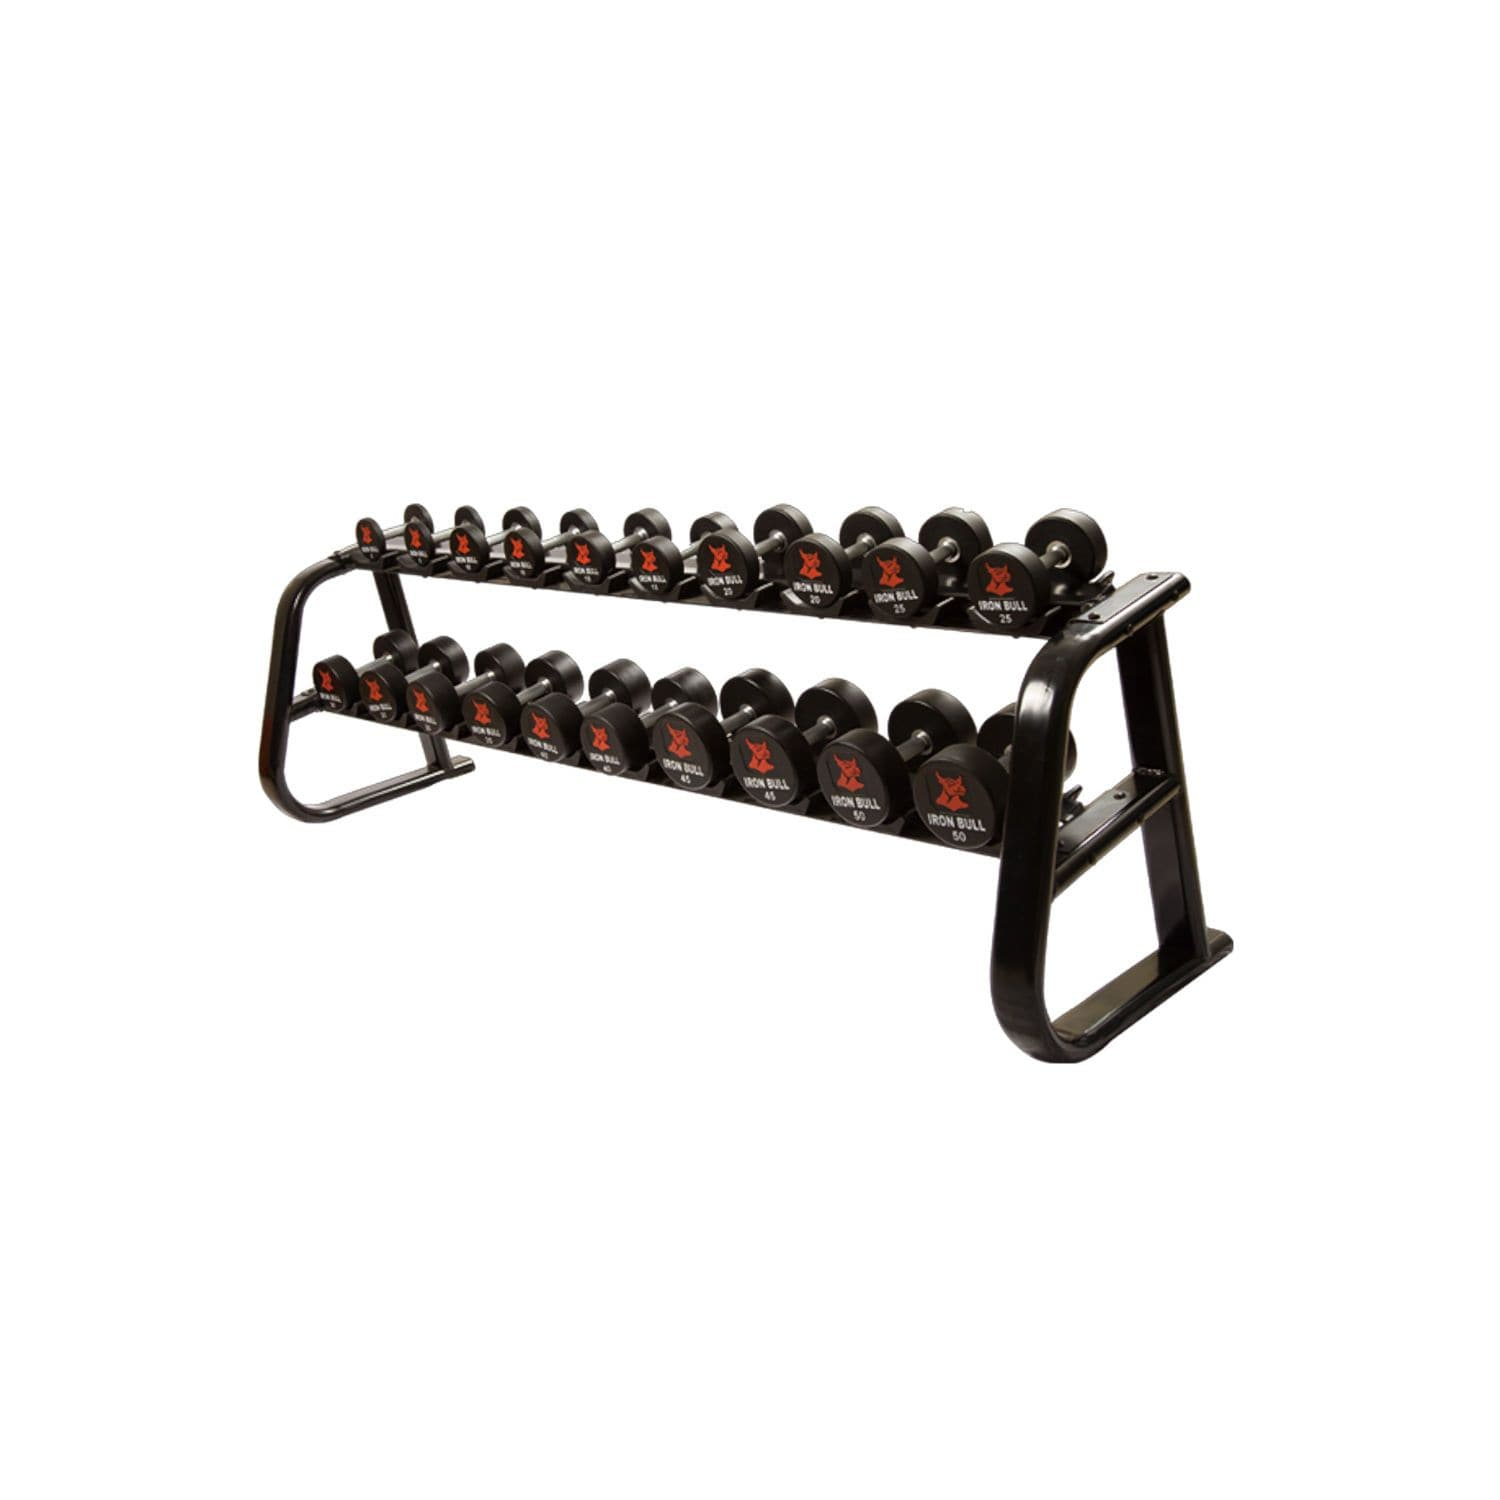 IronBull Fitness IR6300 Dumbbell Rack (Holds 10 Pairs) weight rack IronBull Fitness